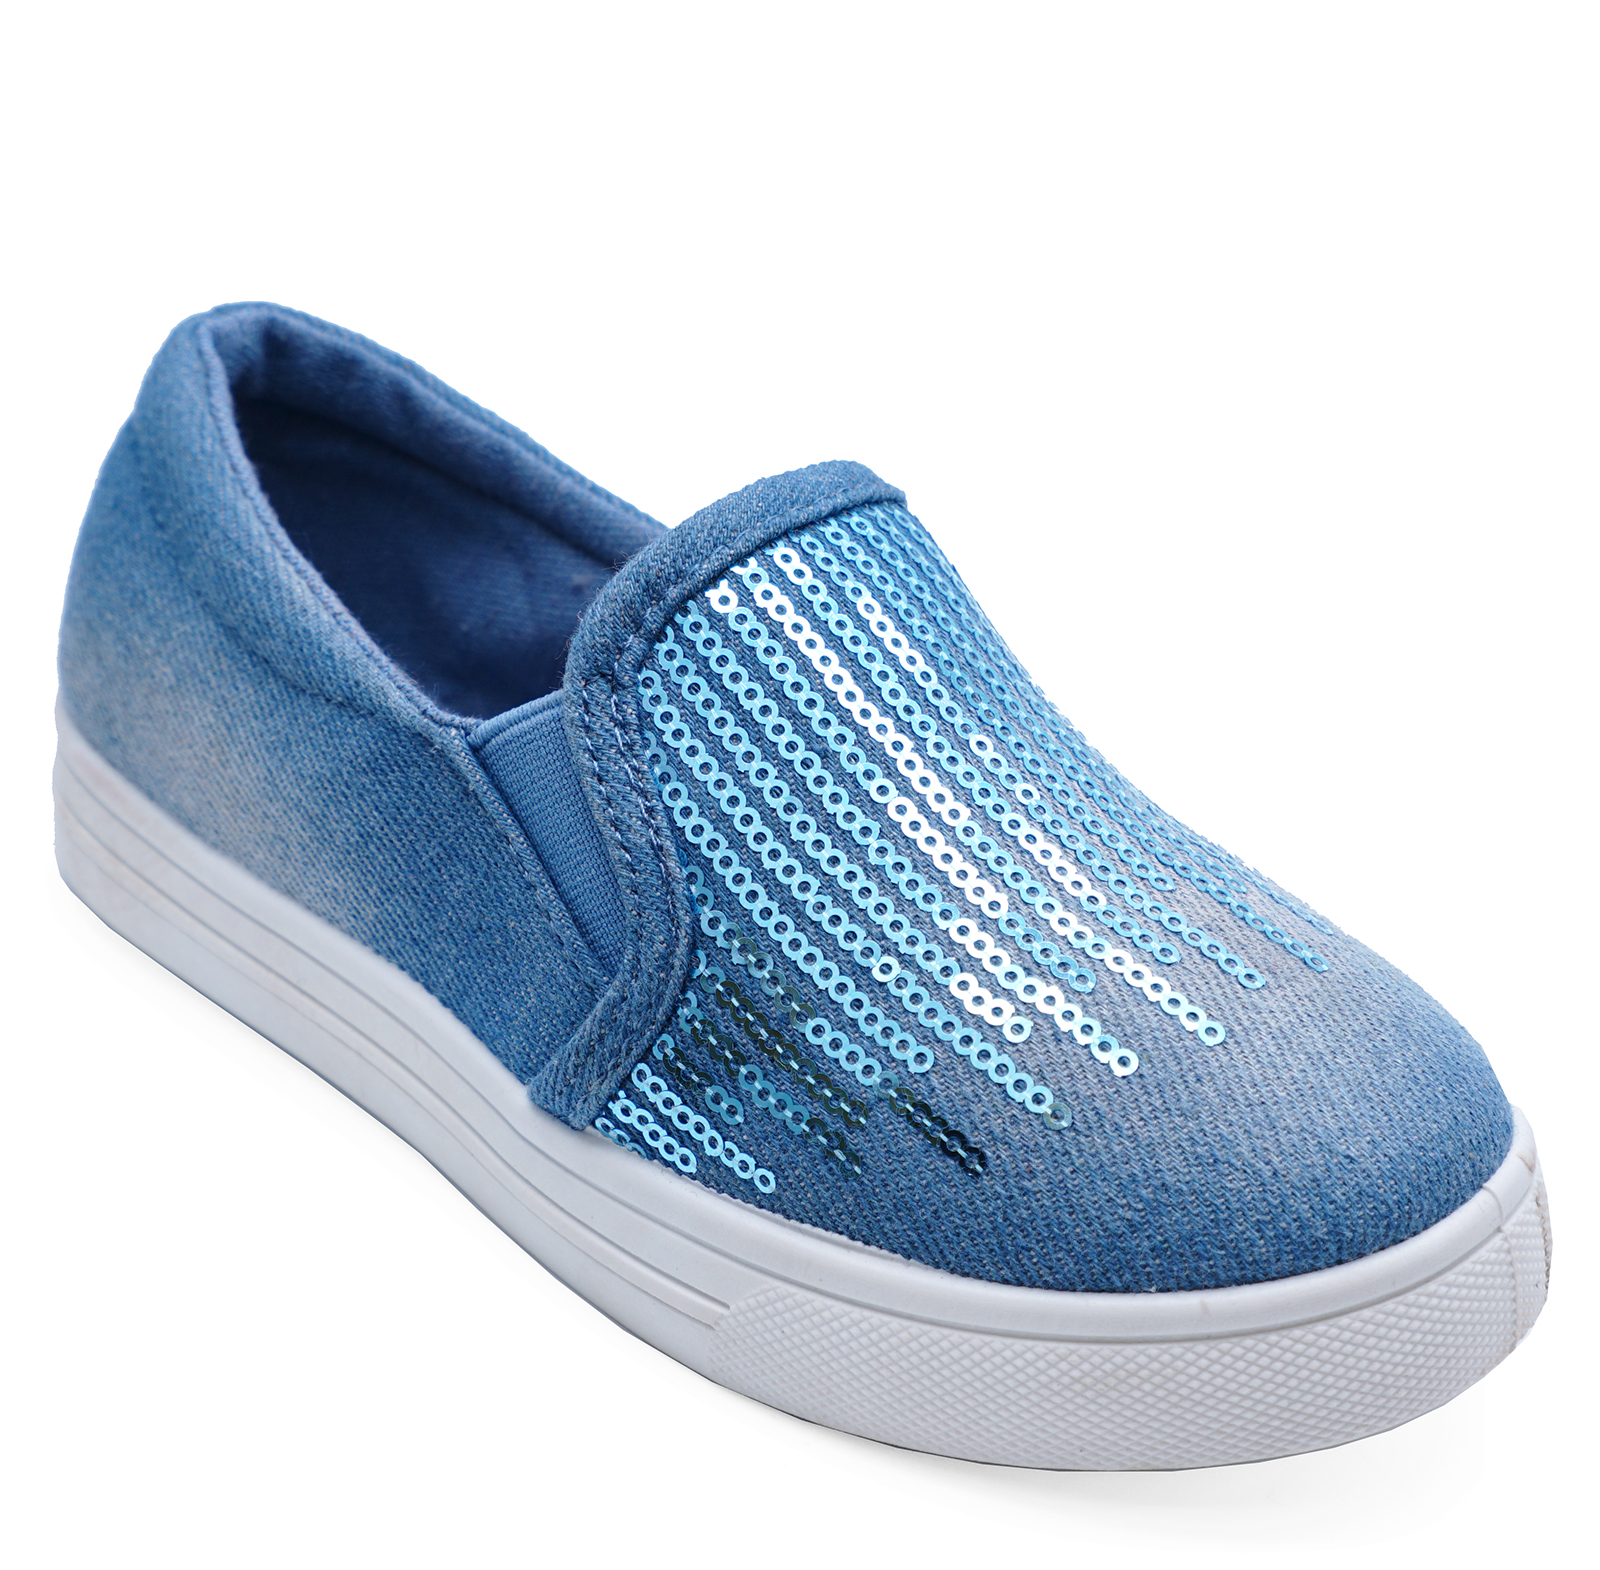 CHILDRENS-KIDS-GIRLS-BLUE-SLIP-ON-CASUAL-SHOES-TRAINERS-DANCE-PUMPS-SIZES-8-1 thumbnail 4